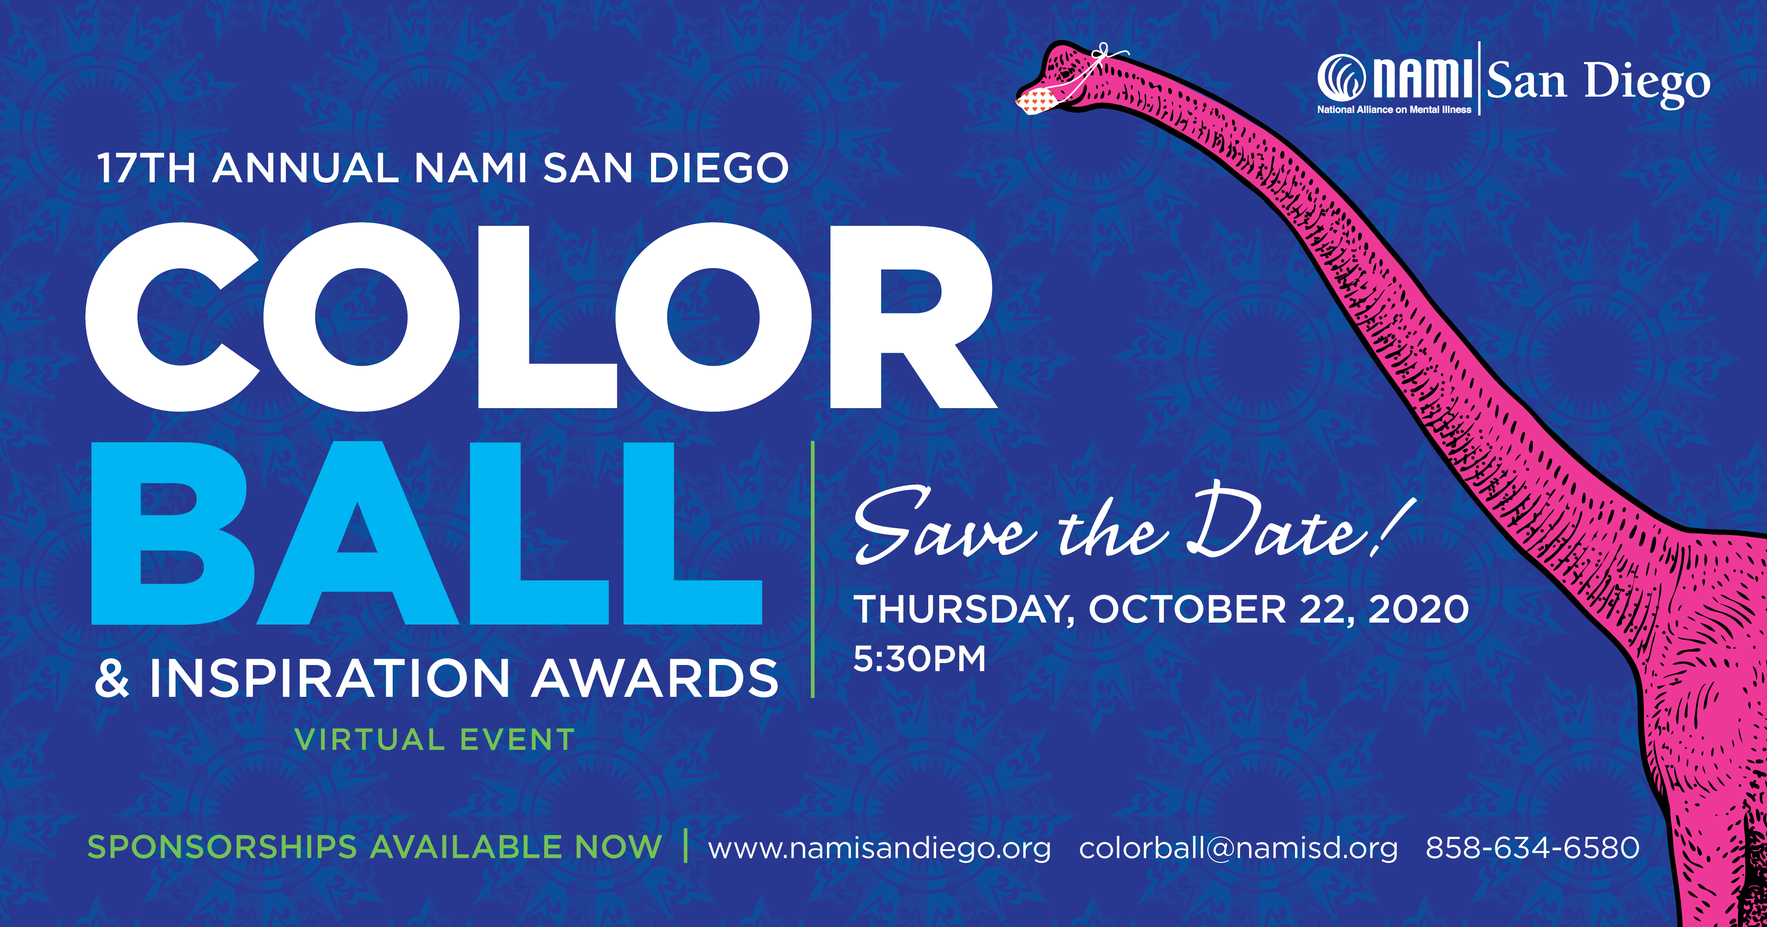 17th Annual NAMI San Diego Color Ball & Inspiration Awards image